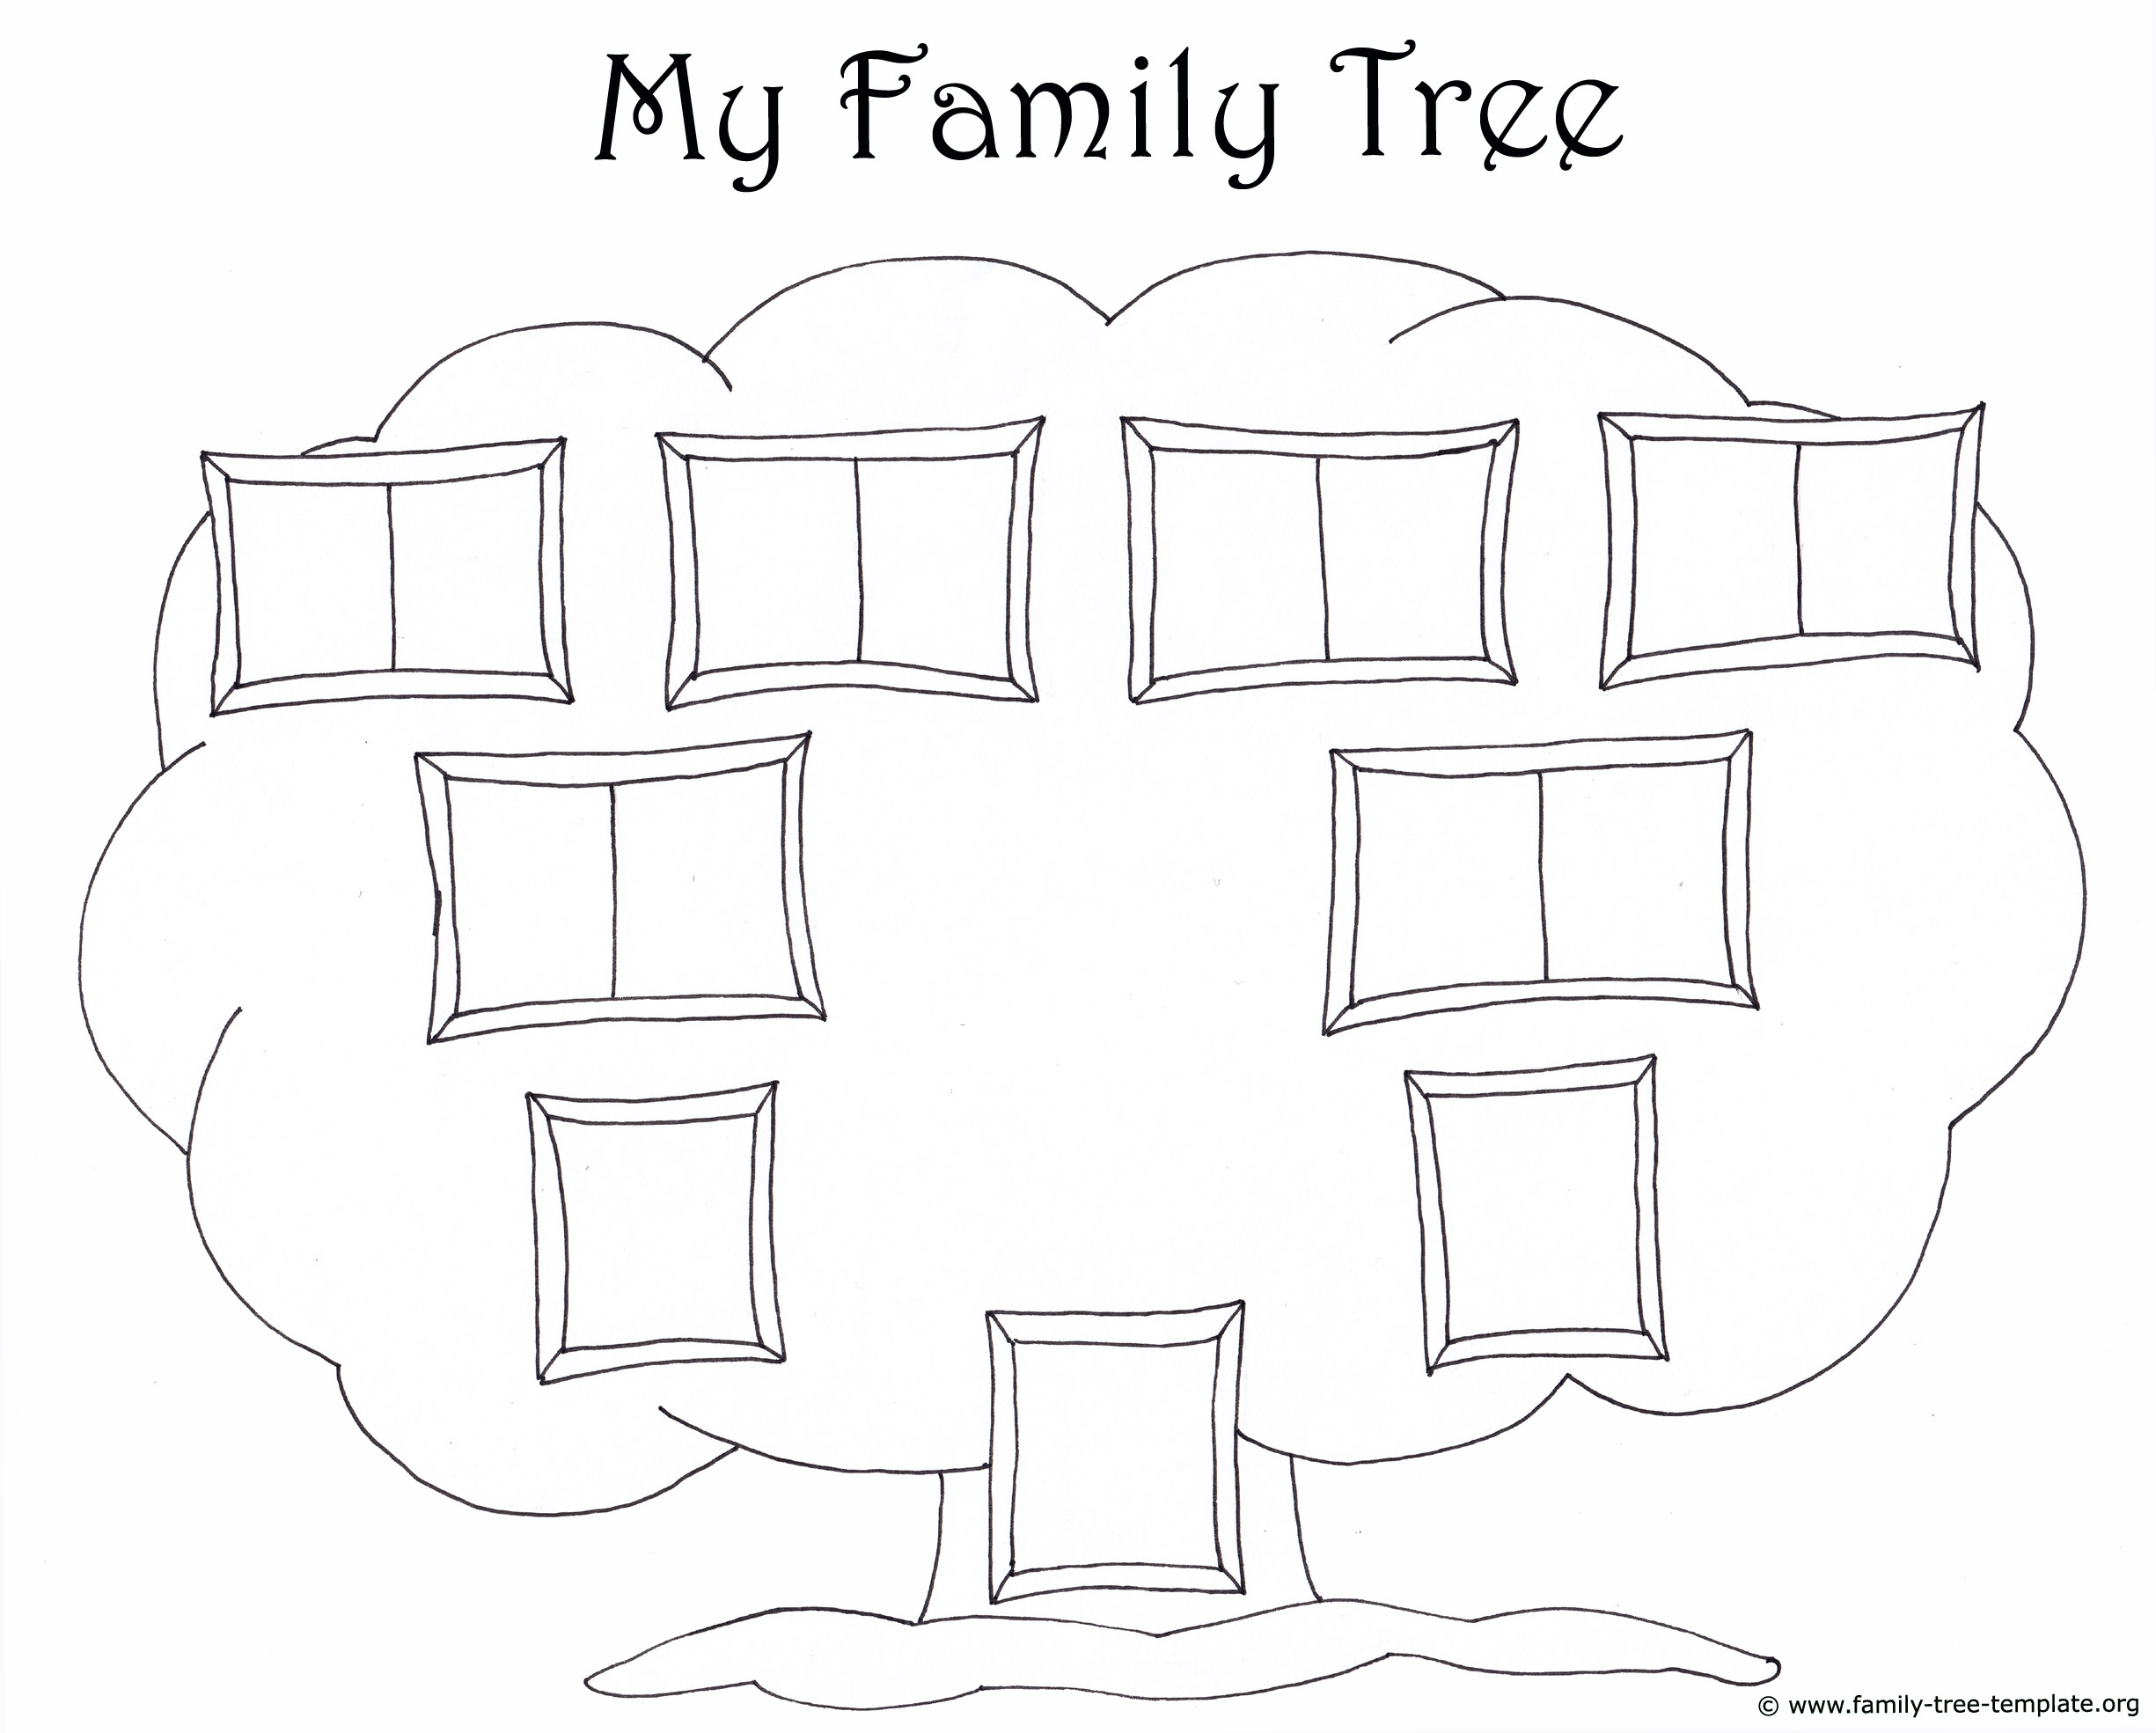 draw a family tree template - family tree template for kids printable genealogy charts